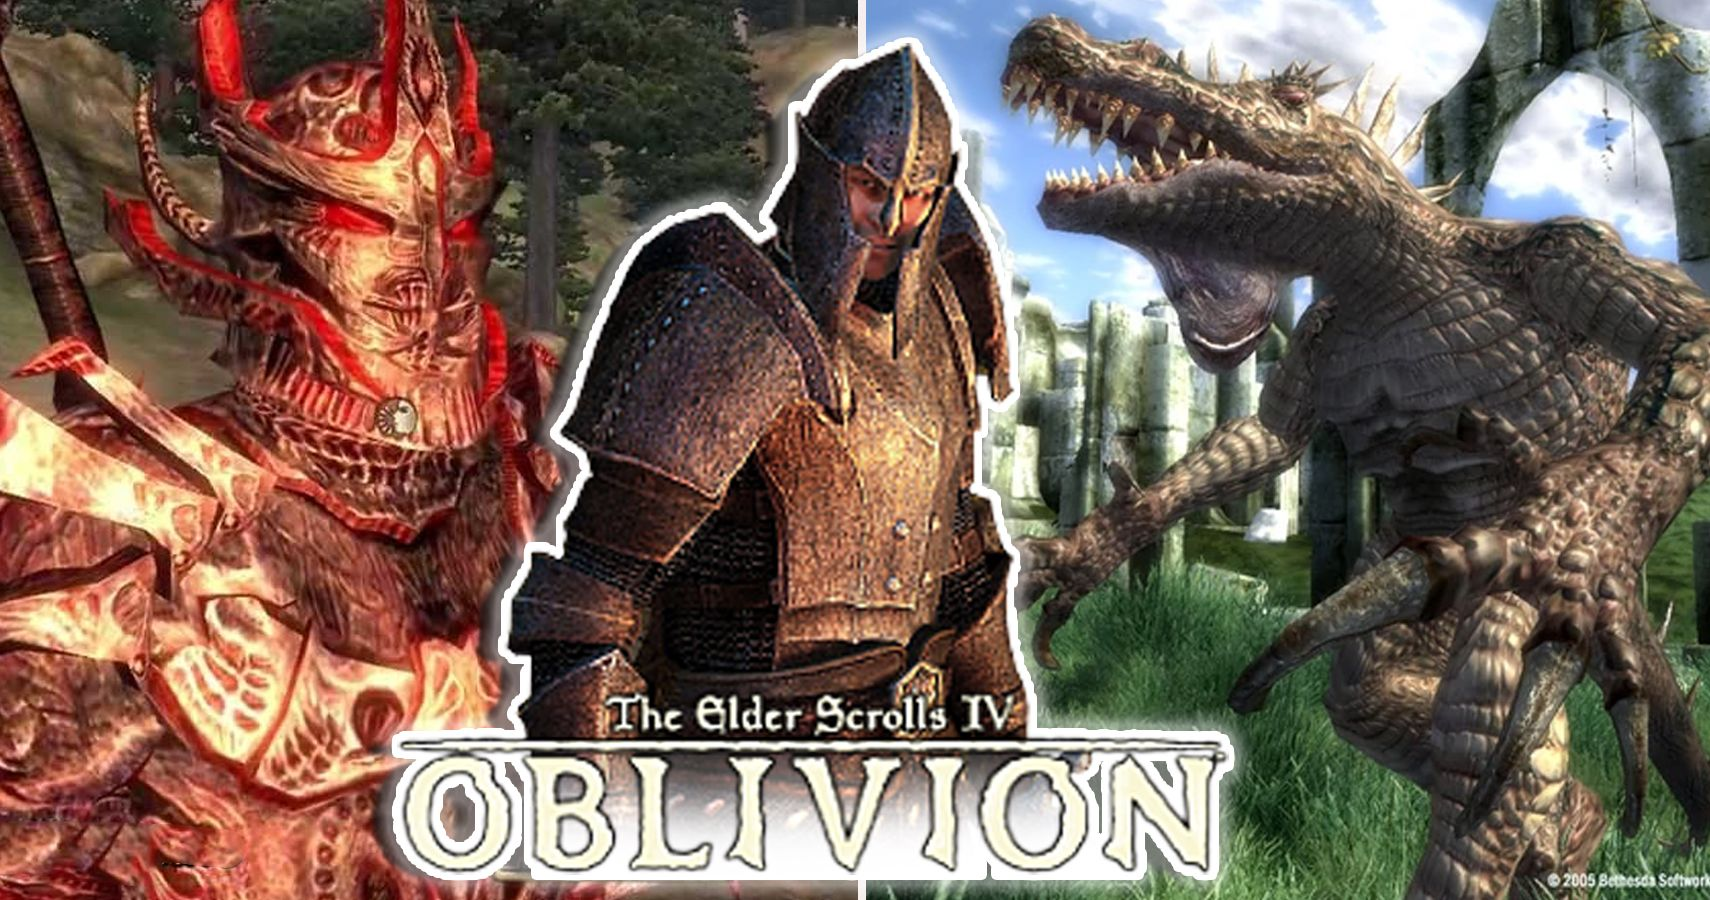 25 Hidden Secrets You Still Havent Found In The Elder Scrolls 4